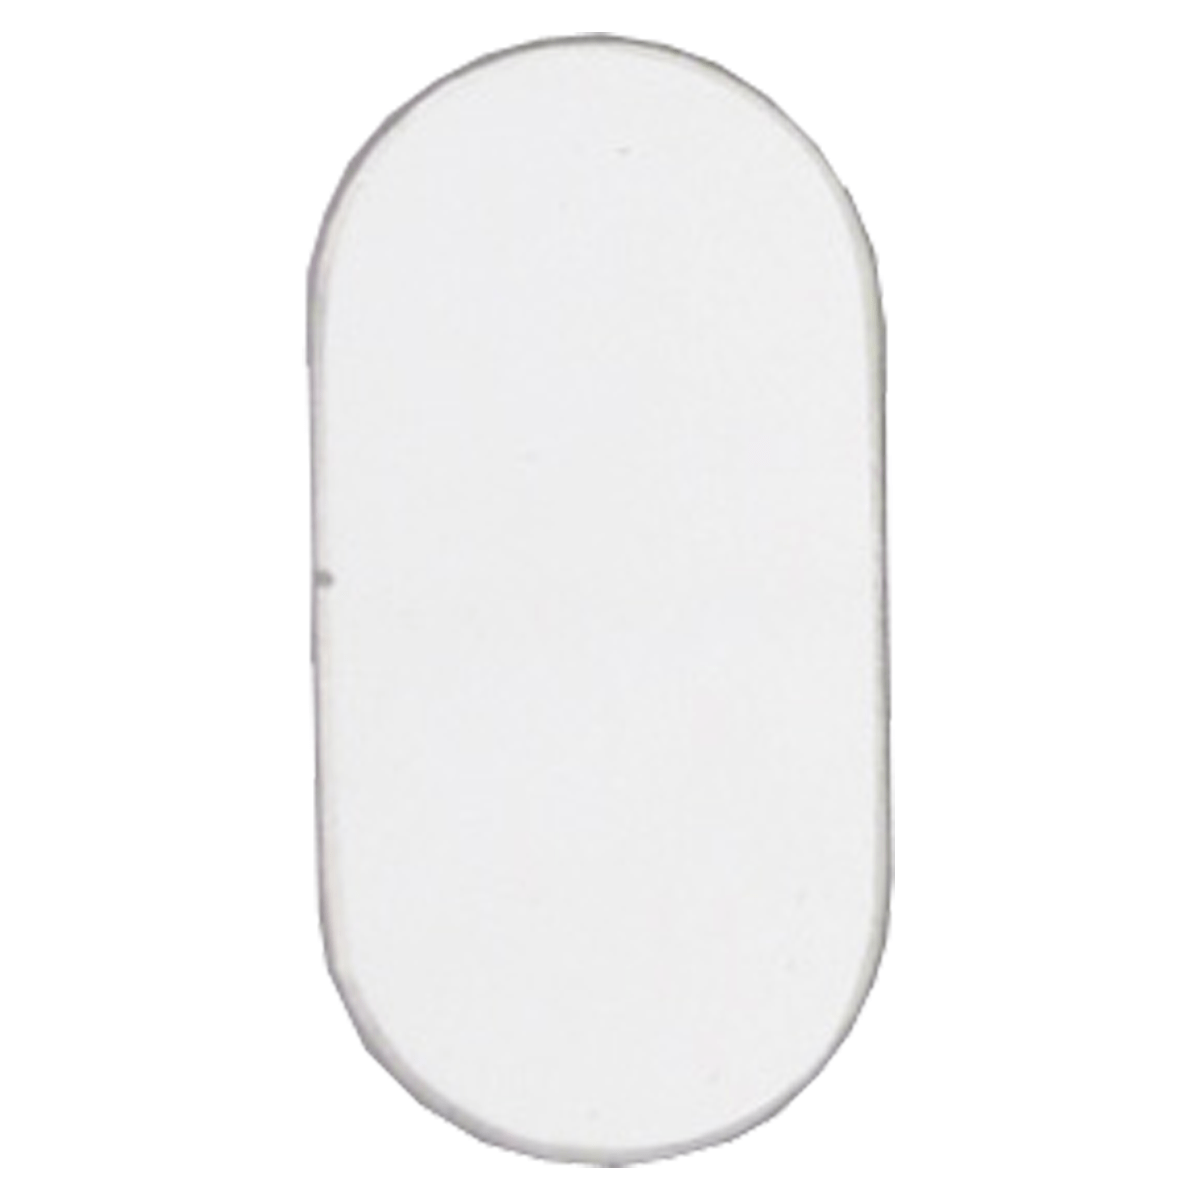 8 1 2 inspection mirror replacement glass 157 1 for Mirror replacement